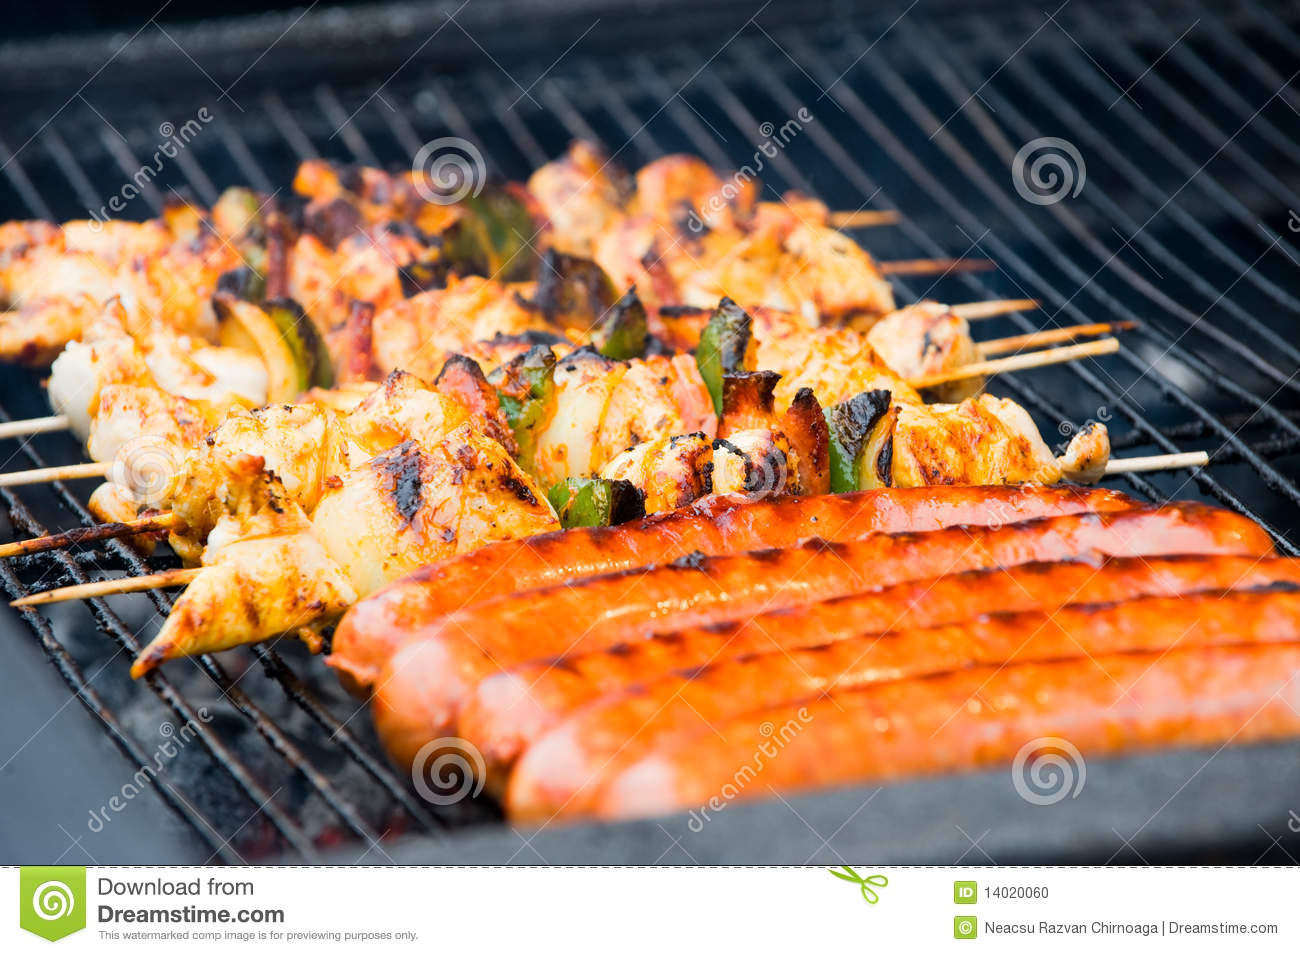 Sausages And Barbecue On A Open Air Stock Photo - Image ...